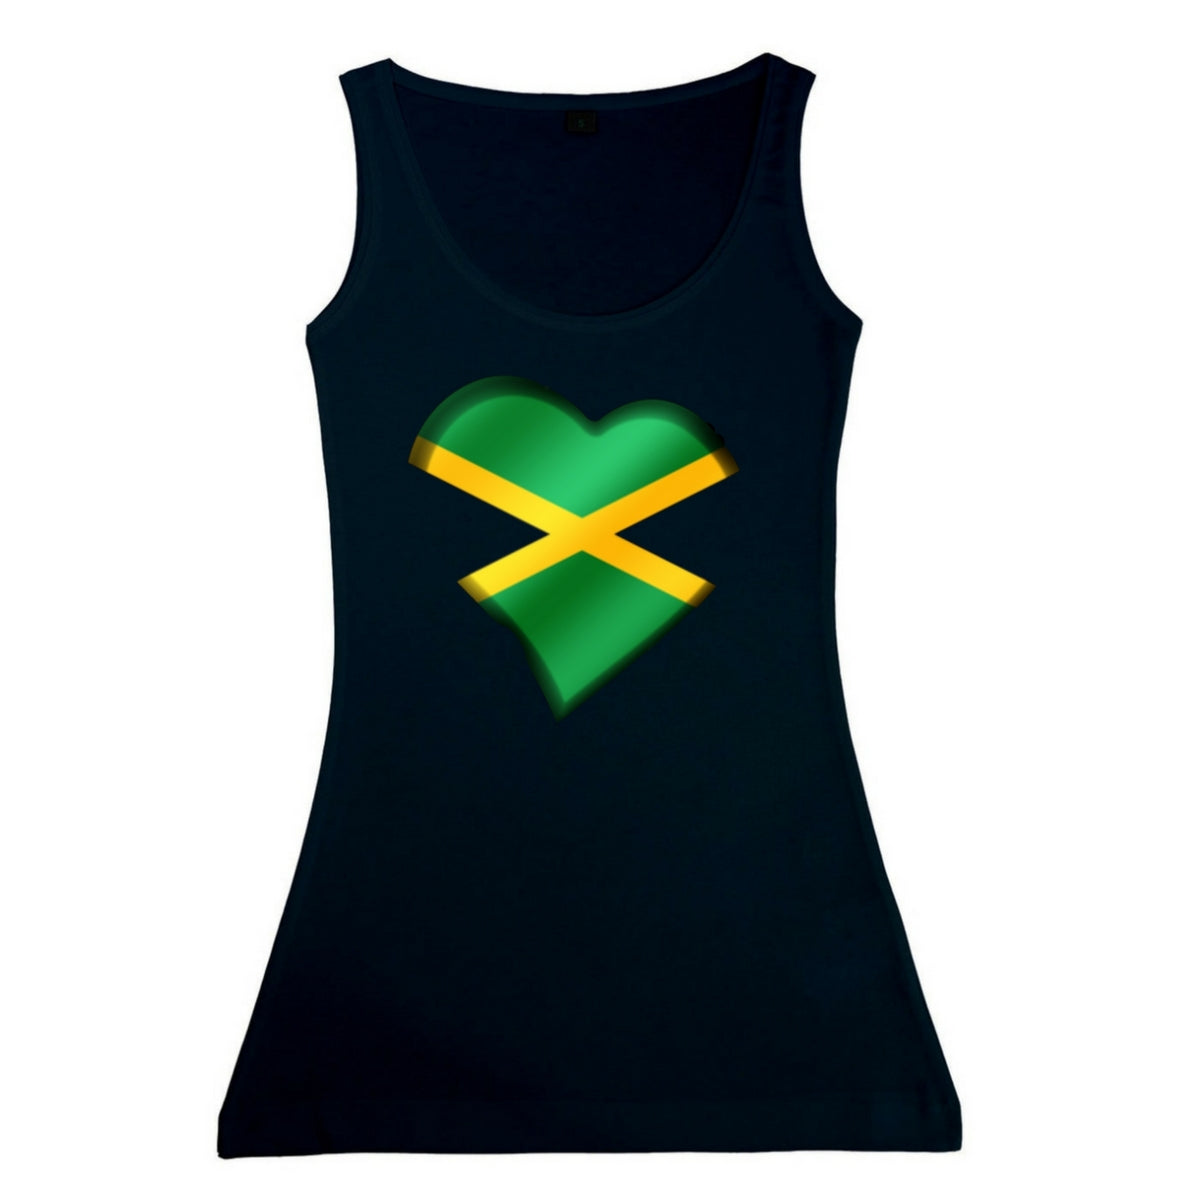 Women's Jamaican Heart Vest Tank Top